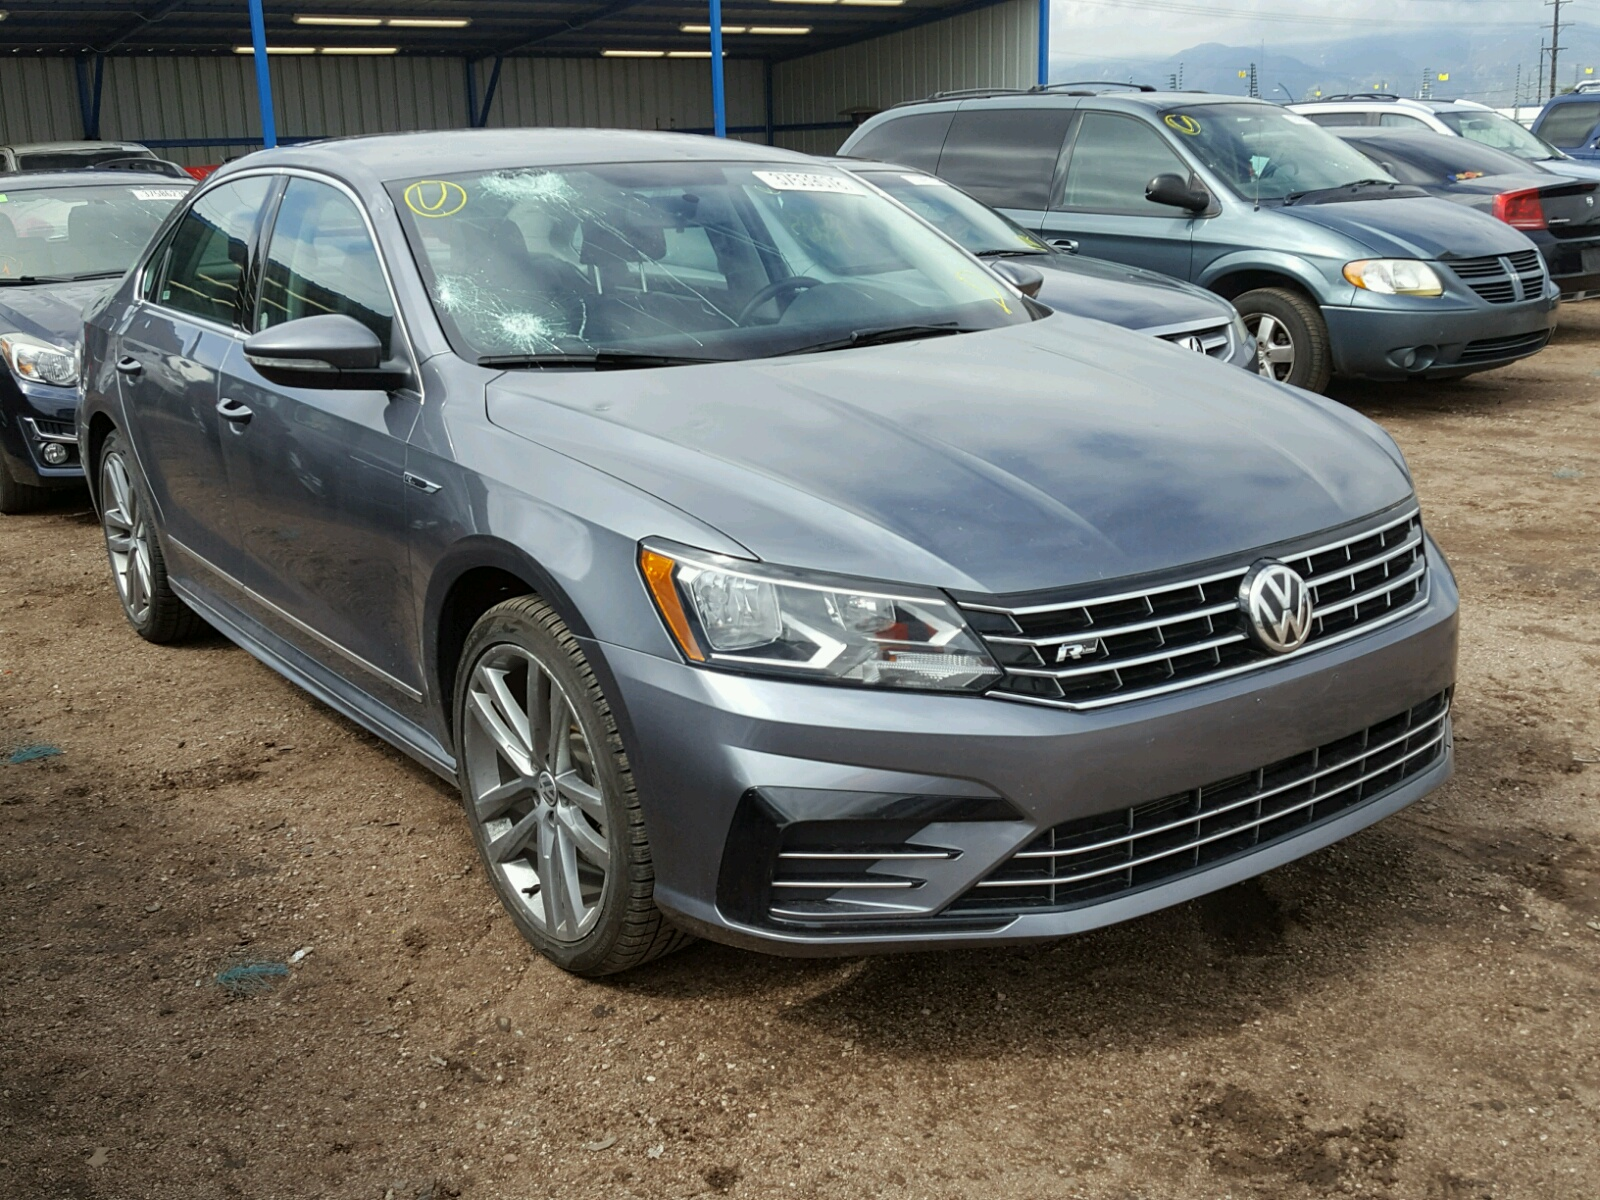 view carfinder on auctions volkswagen sale in co left wolf springs copart jetta lot colorado online gray auto en title salvage